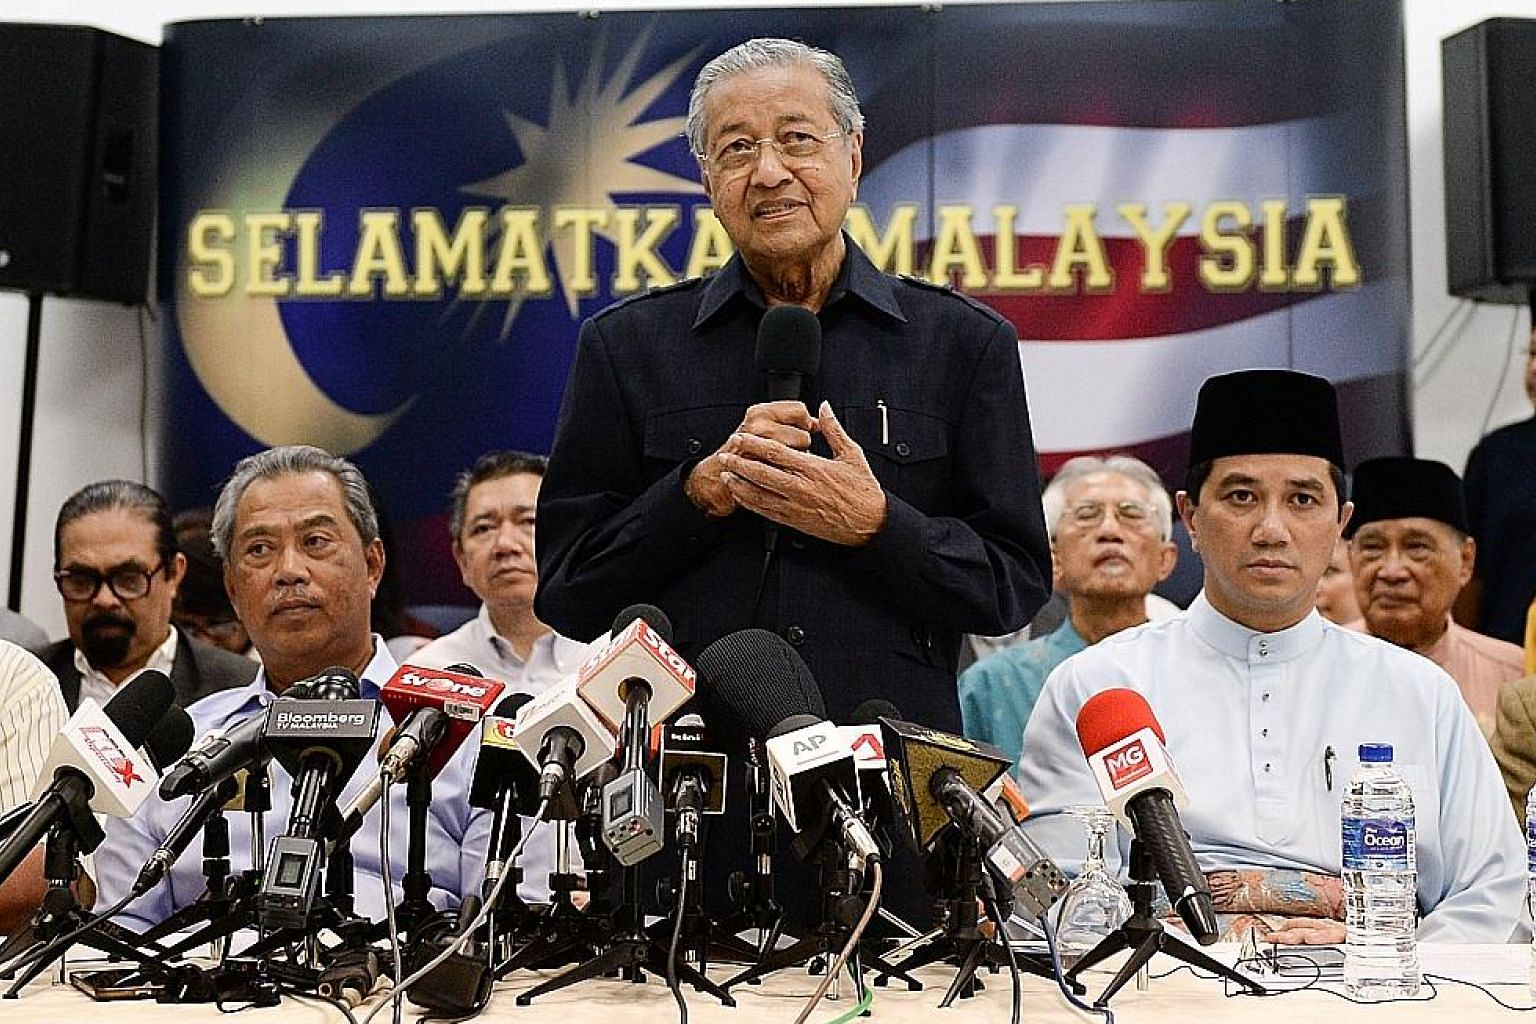 Tun Dr Mahathir Mohamad at a media conference with members of the opposition in March last year. He has been lobbying for his Malay-based party to be the dominant force in Pakatan Harapan.